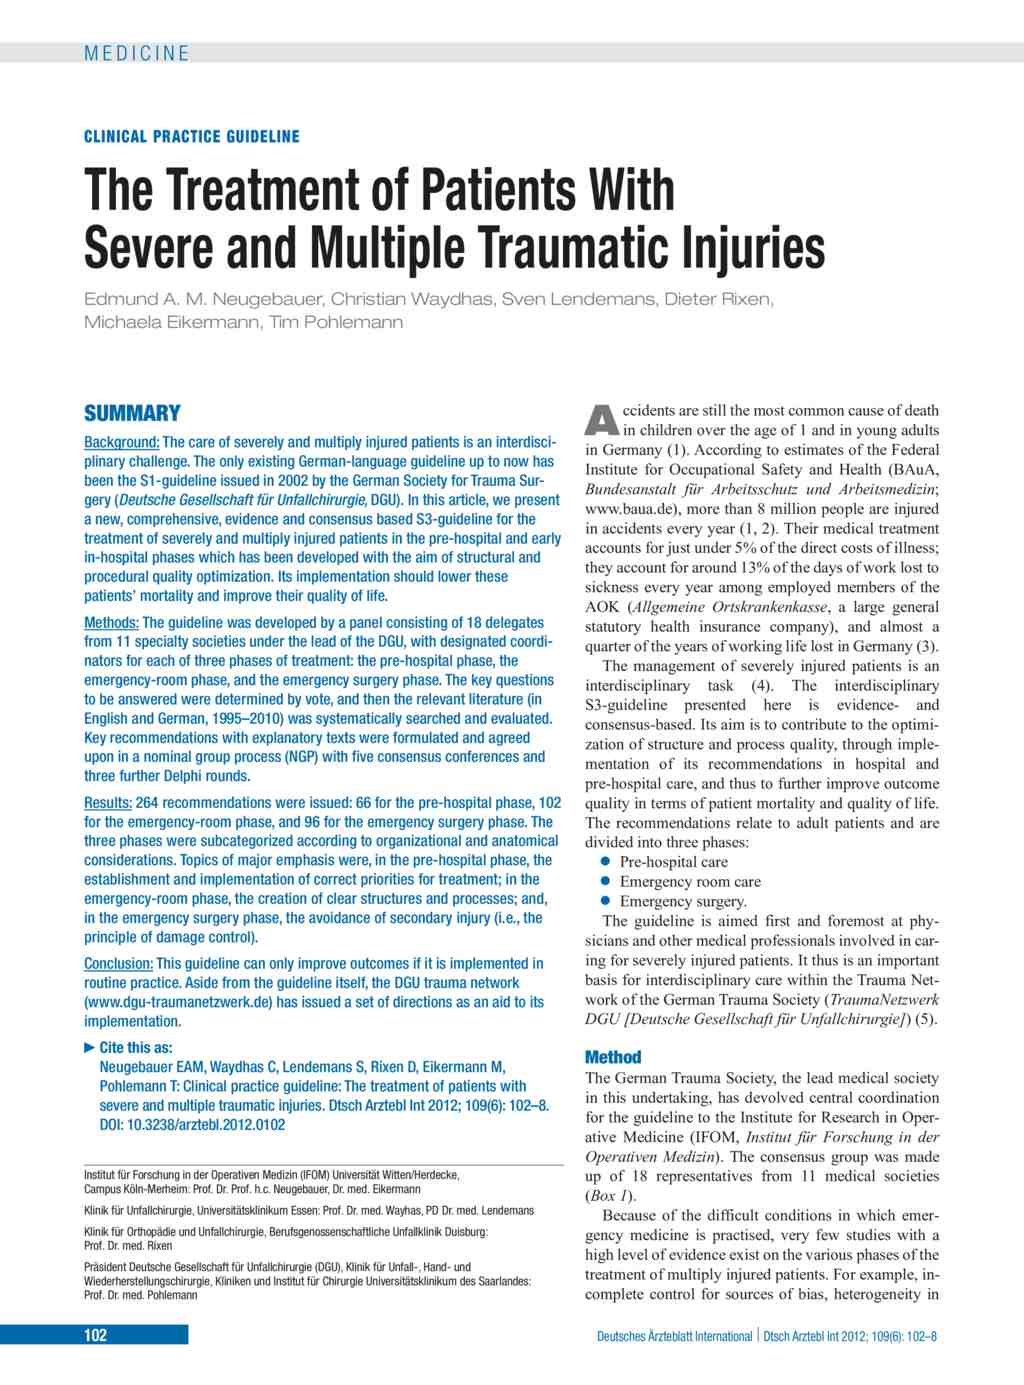 The Treatment of Patients With Severe and Multiple Traumatic ...